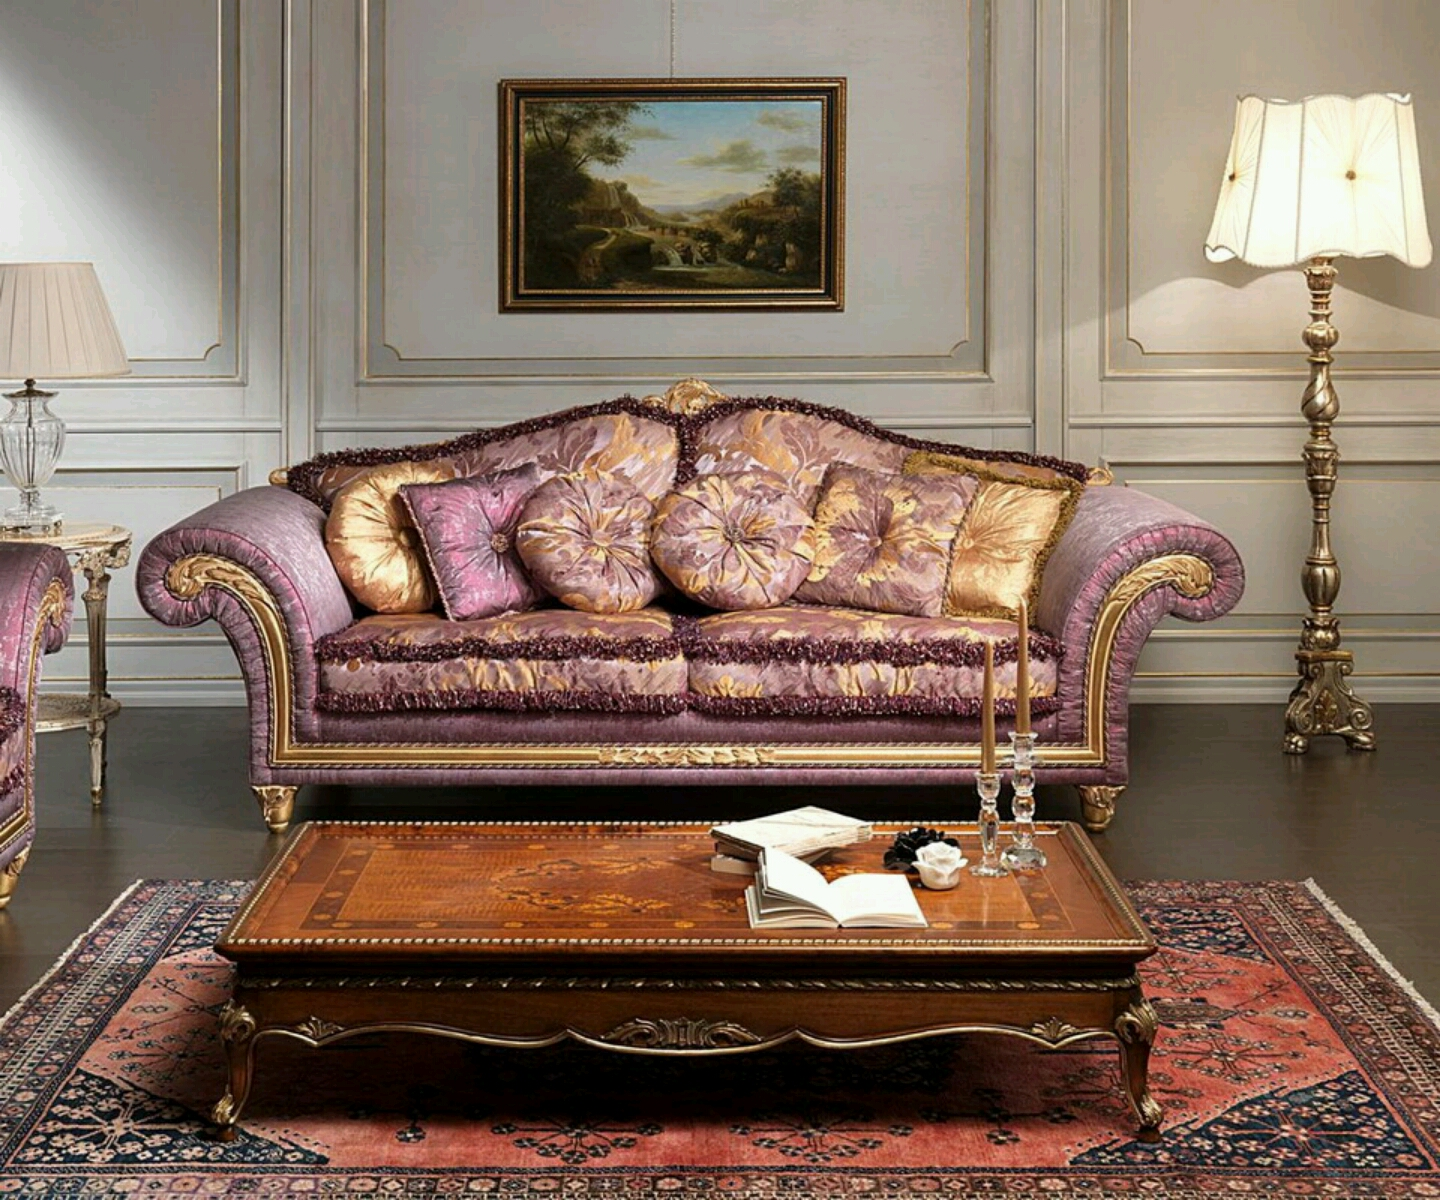 Sofa Cushion Designs Images: Modern sofa designs with beautiful cushion styles    Vintage    ,